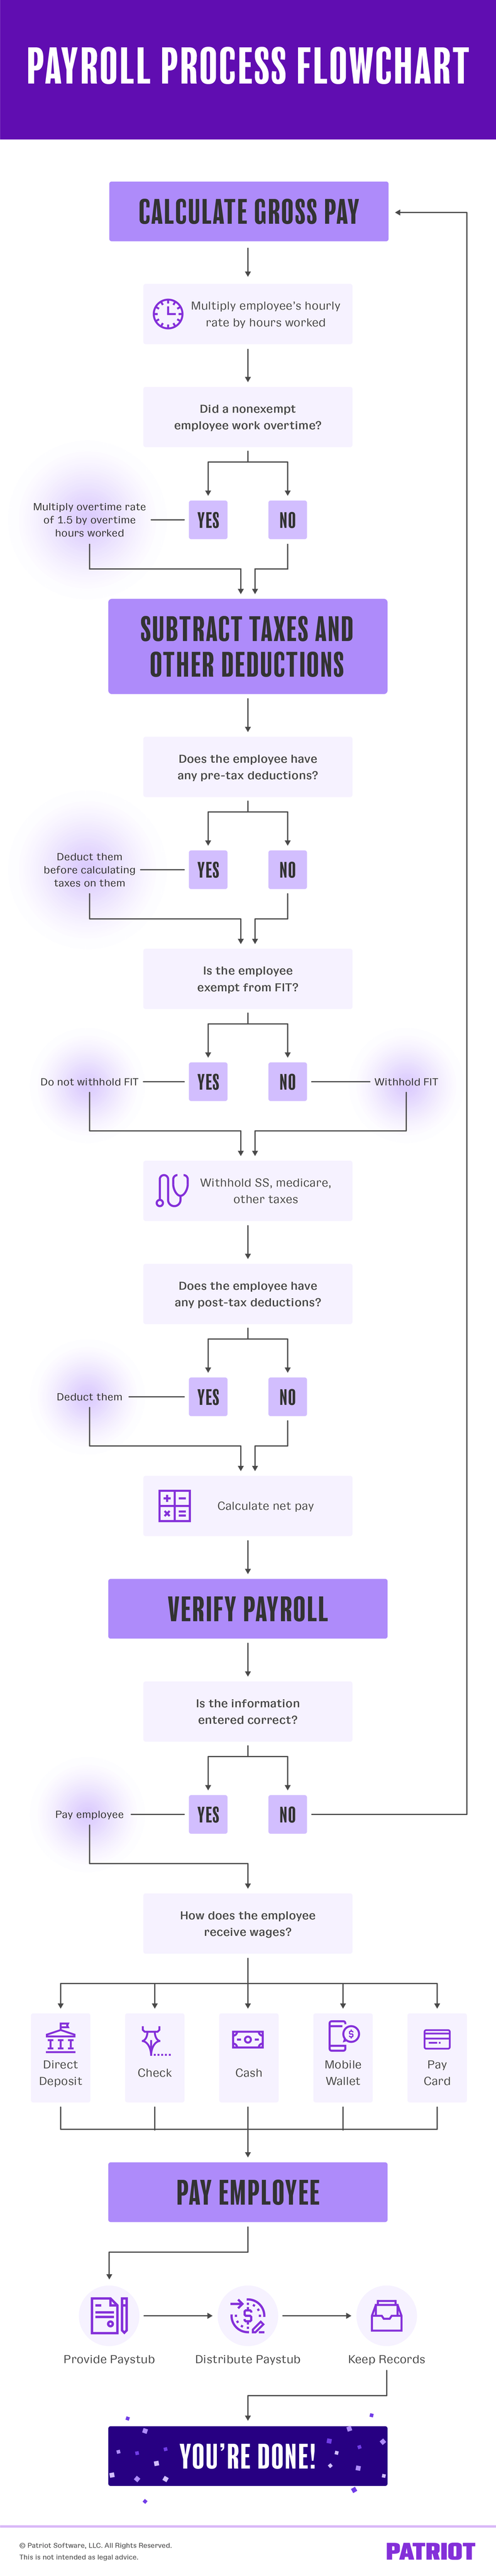 payroll process flowchart detailing the flow of the payroll process